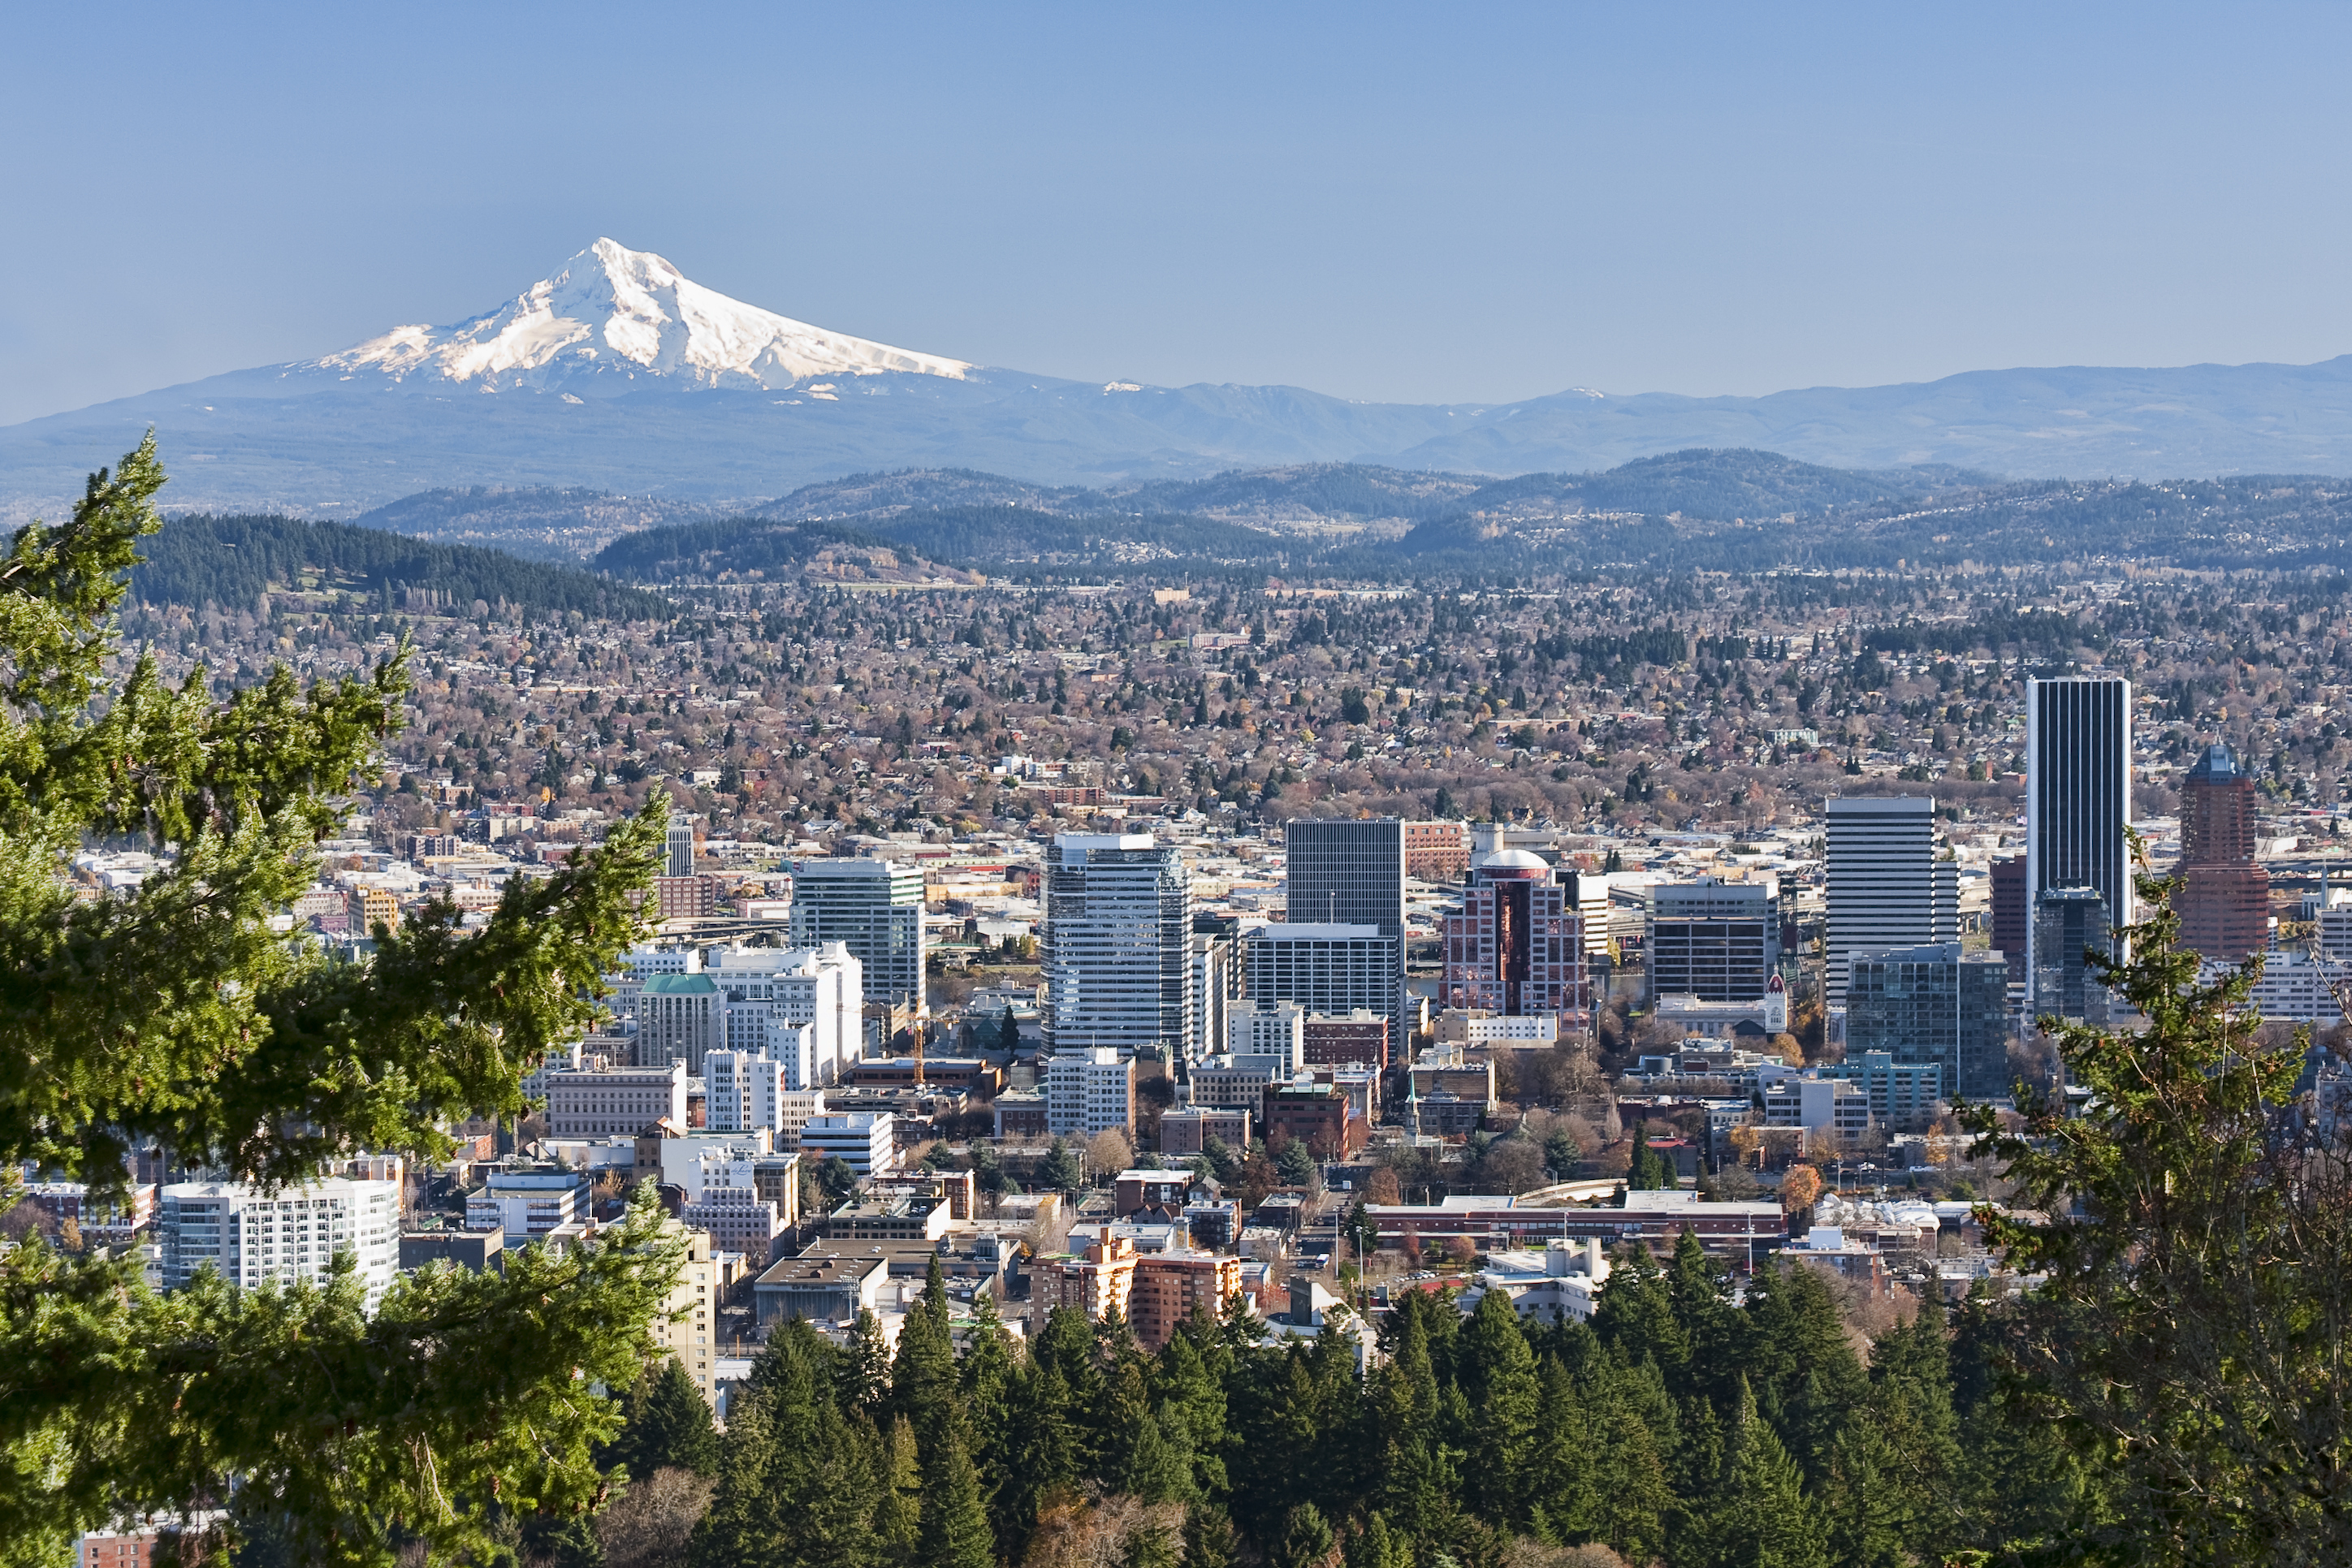 The skyline of Portland with Mt. Hood in the background